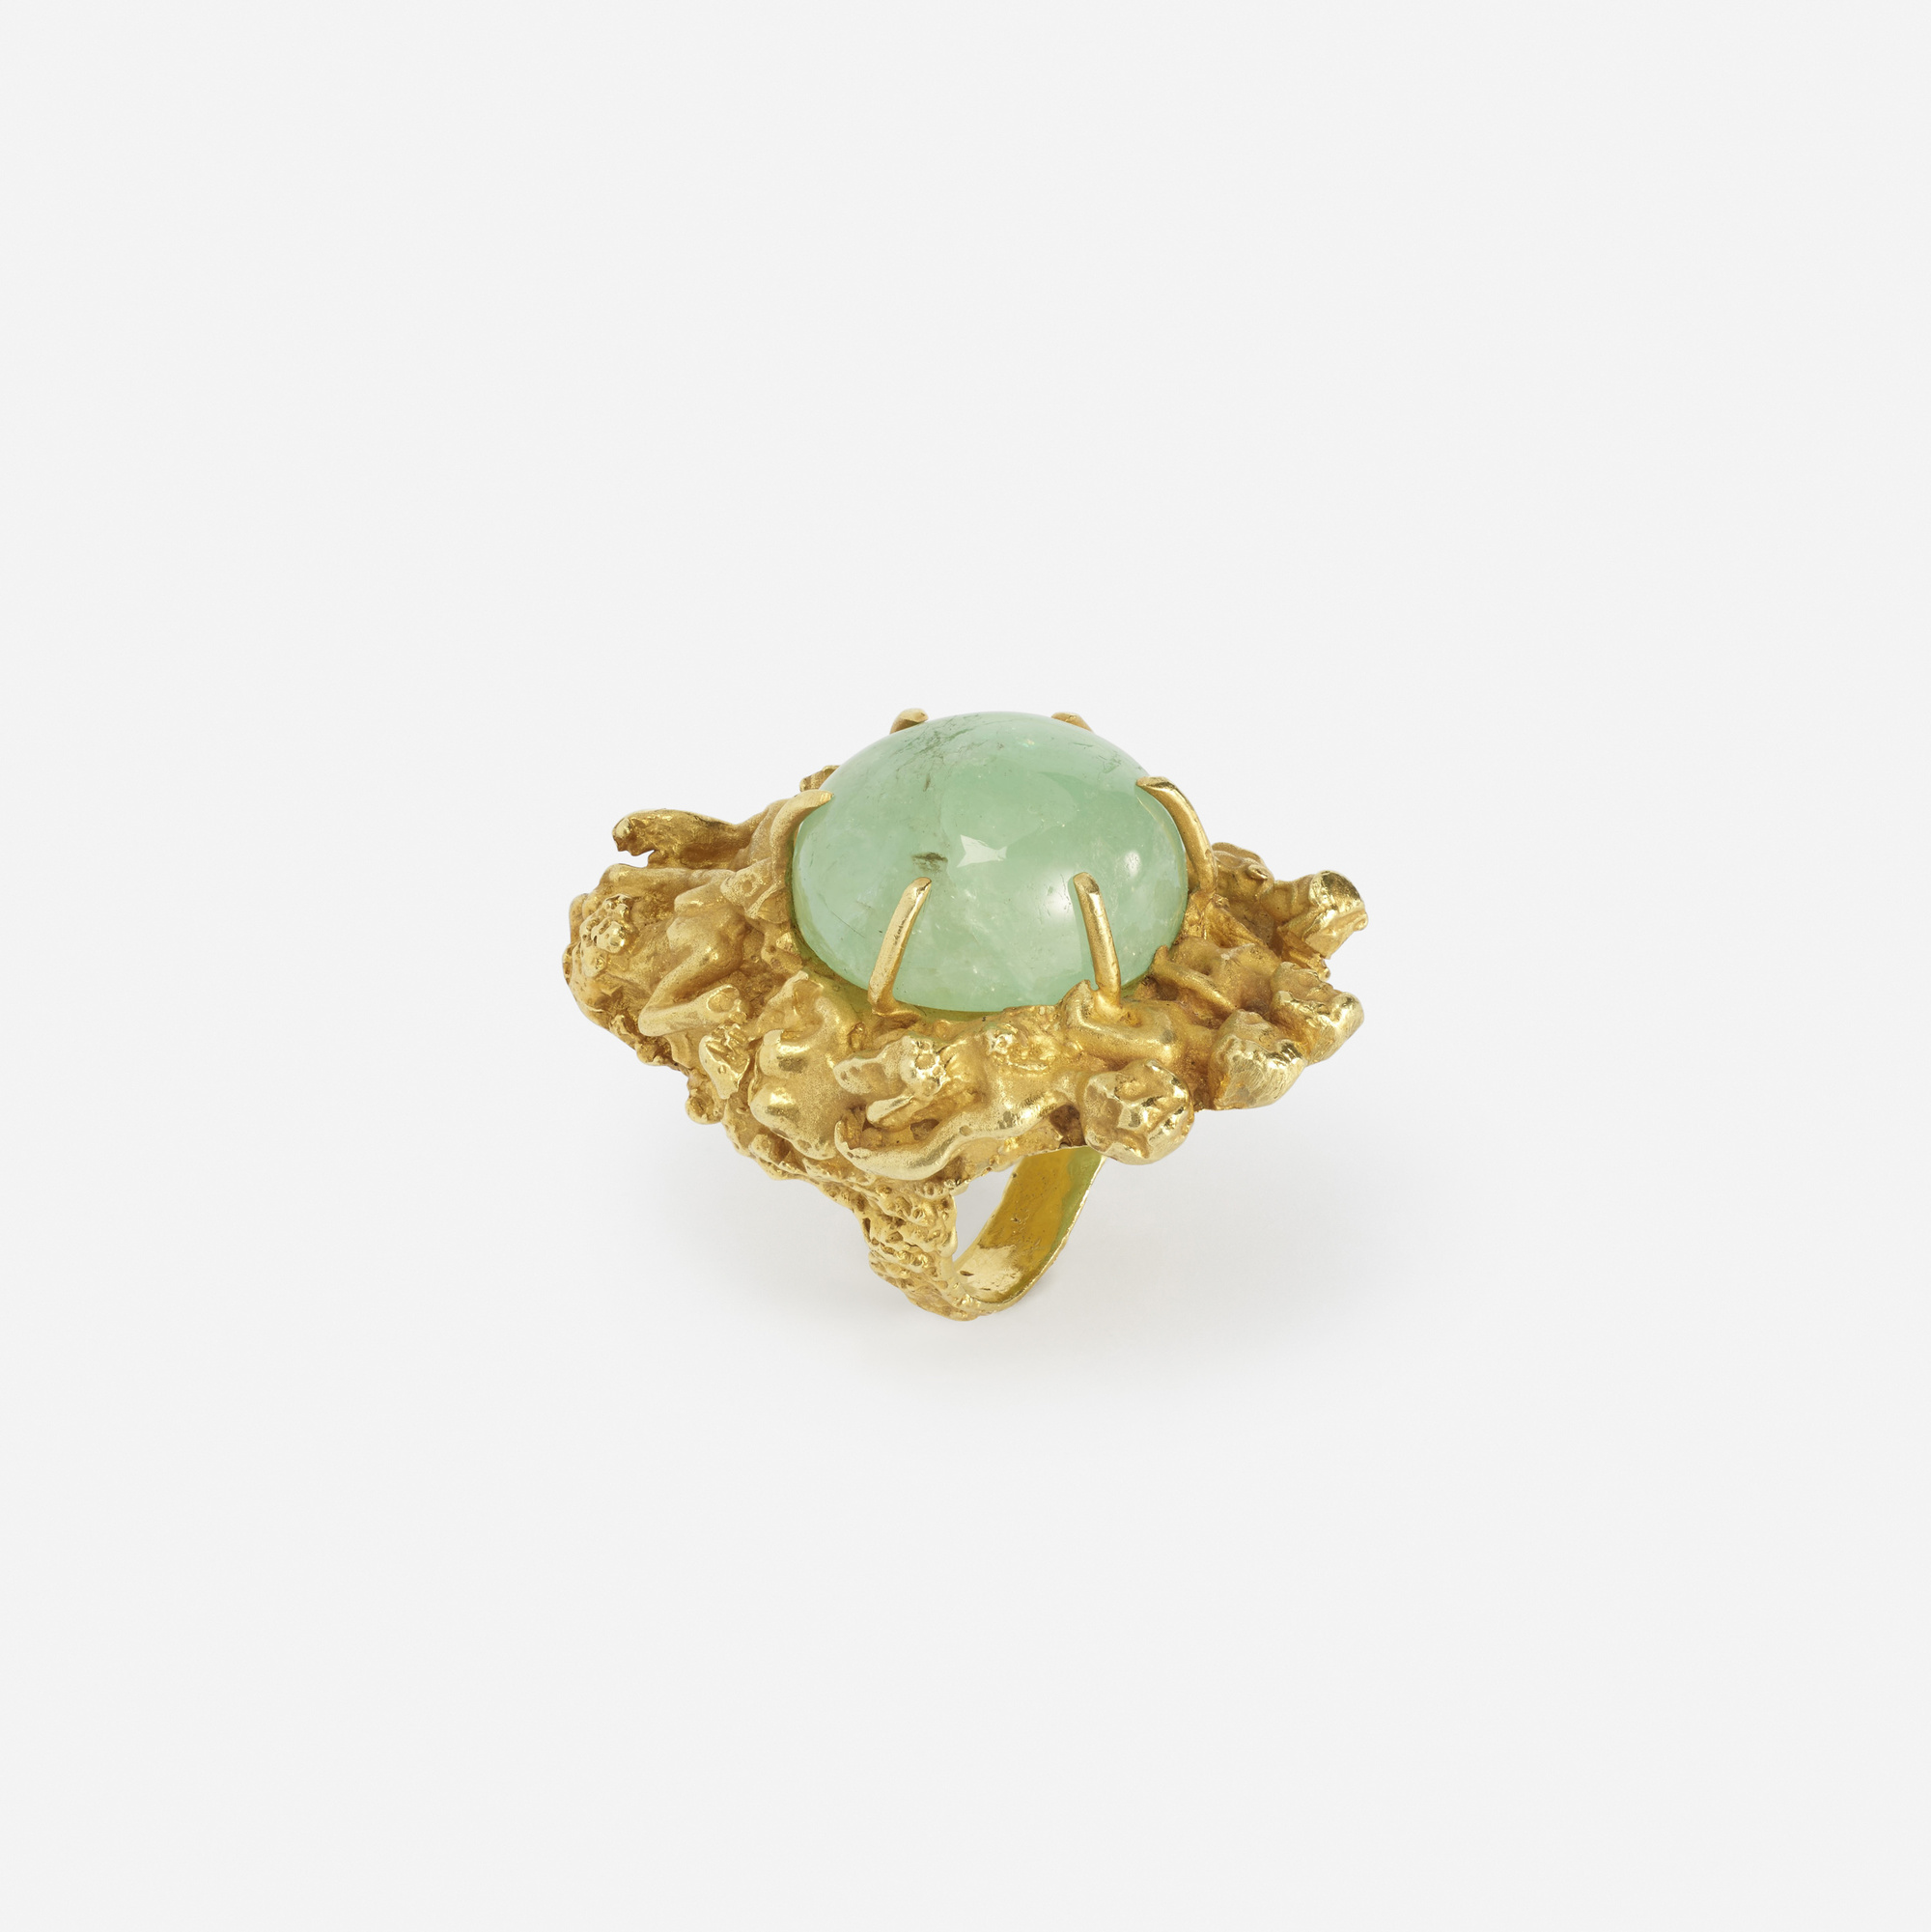 274: Eric de Kolb / A gold and emerald ring (2 of 2)